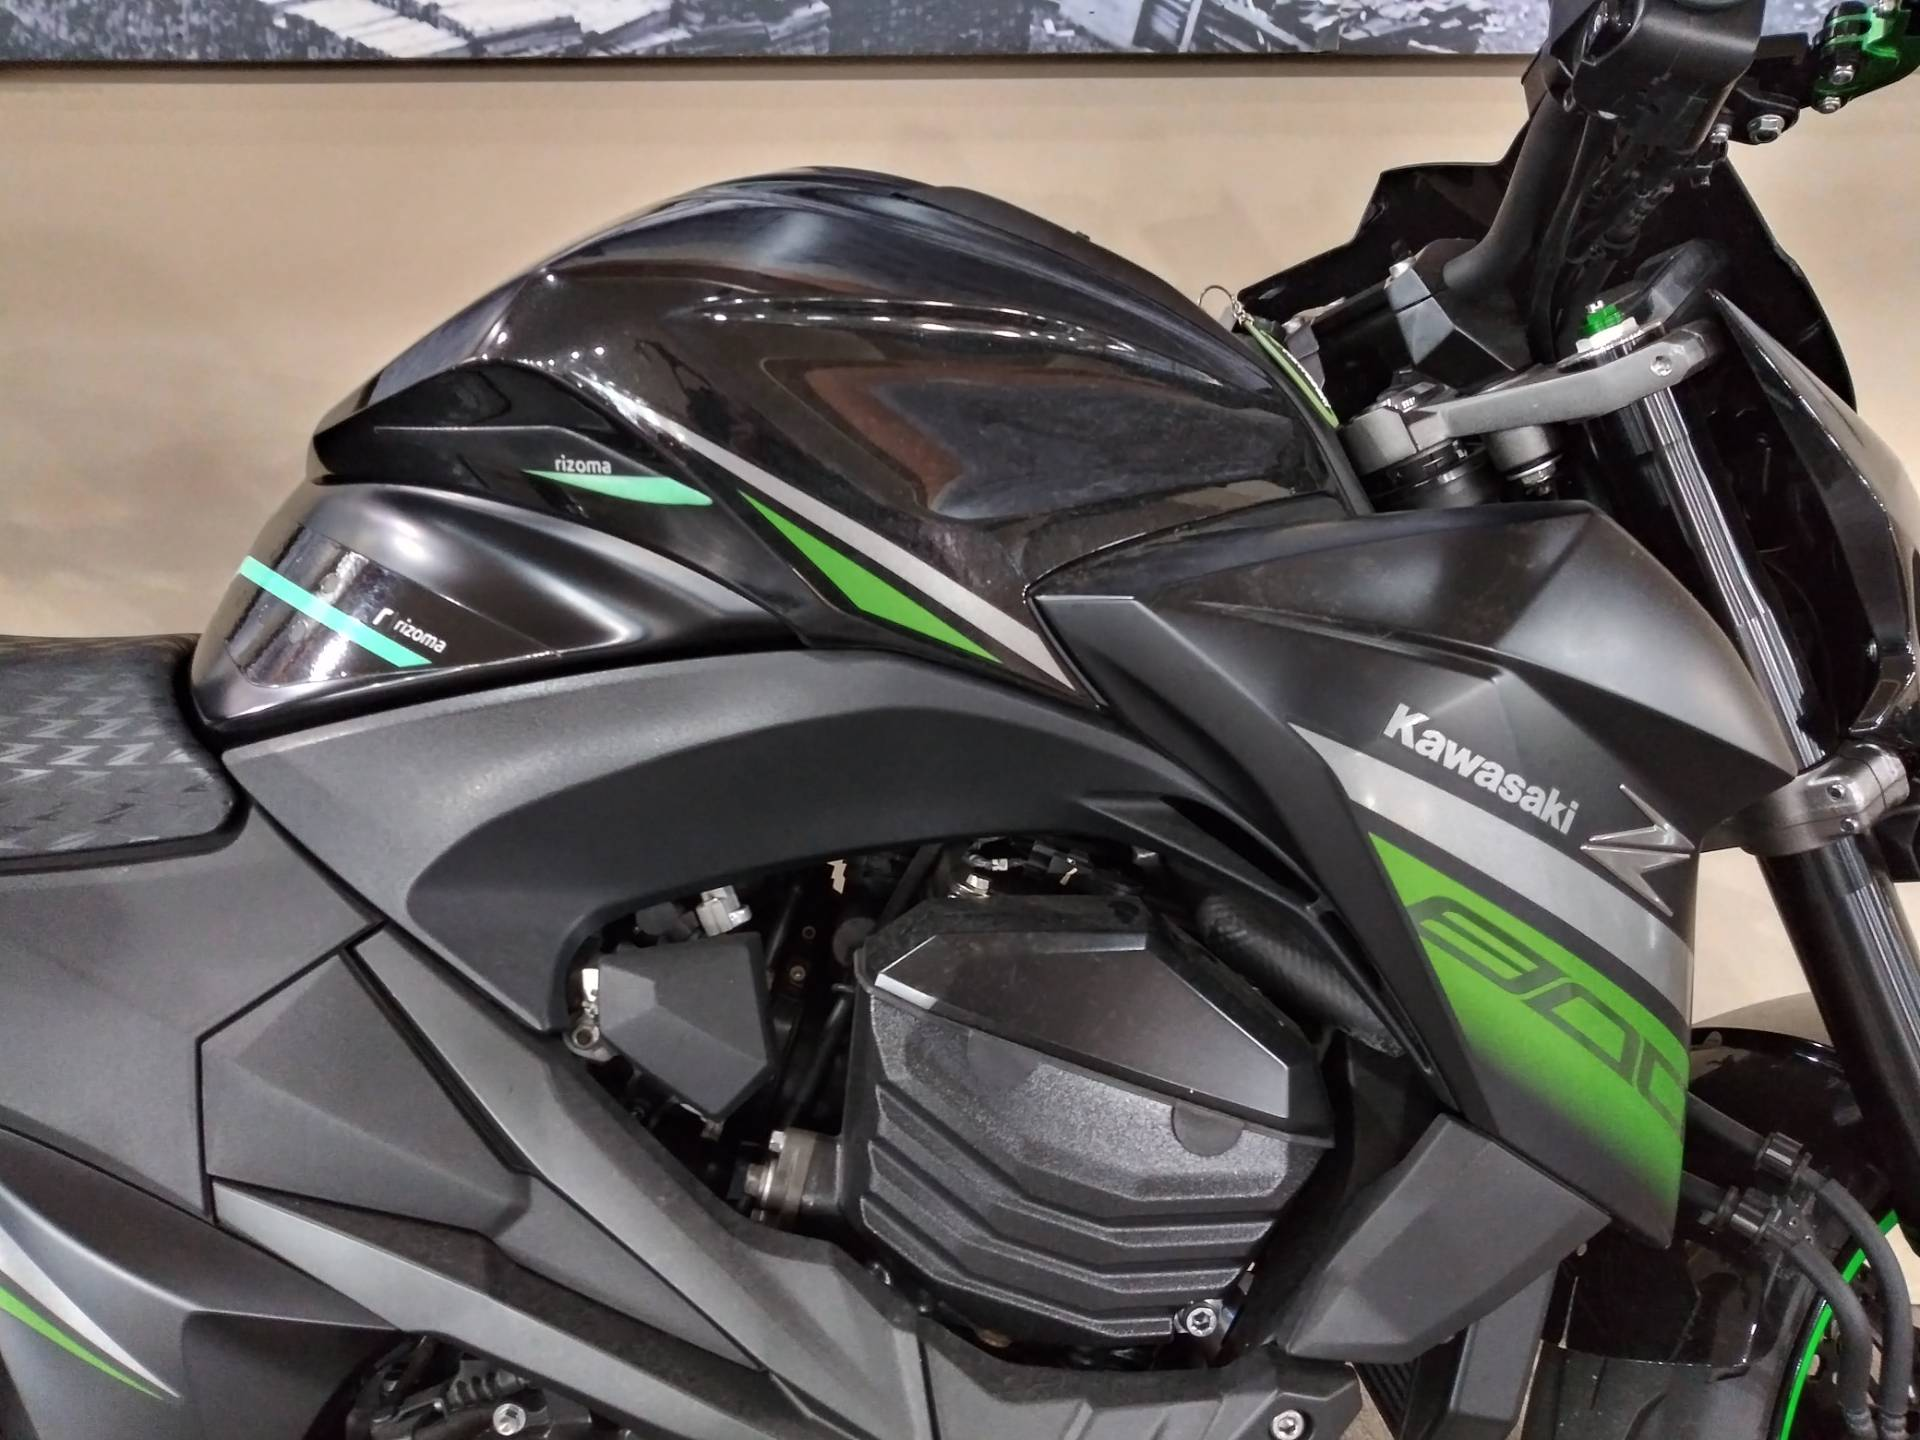 2016 Kawasaki Z800 ABS in Knoxville, Tennessee - Photo 2